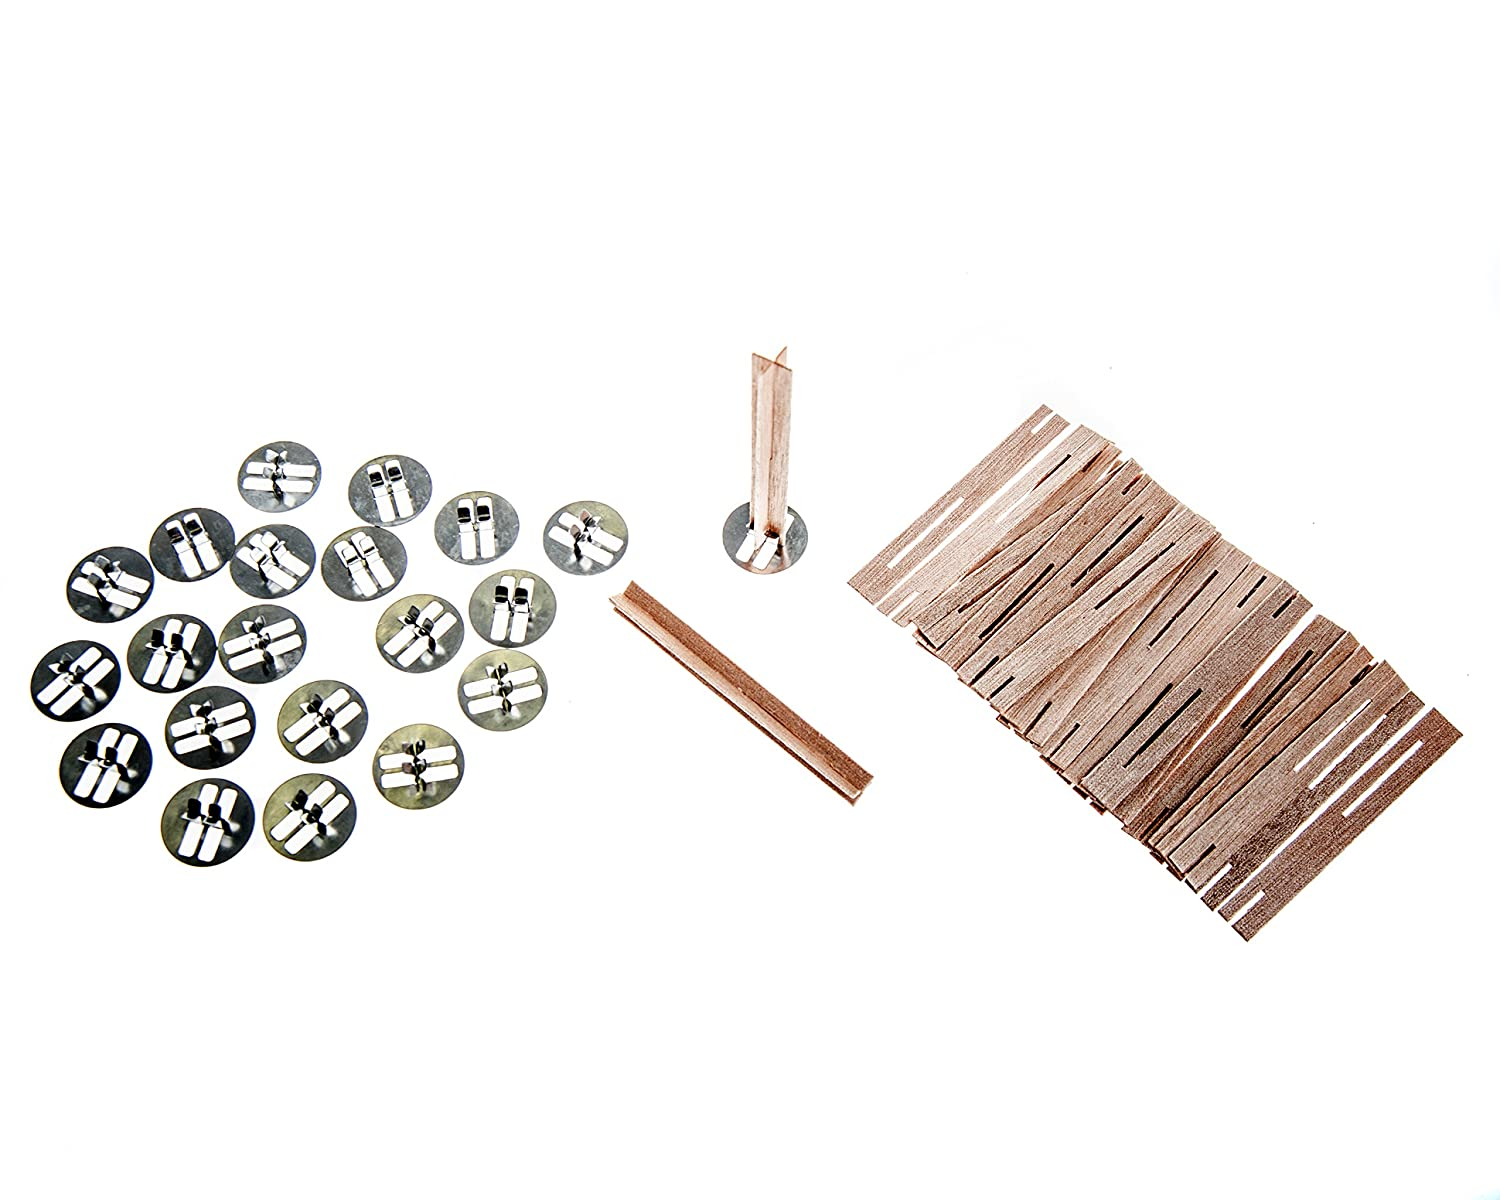 ValesaVales DIY 20 Pack Set of 80 mm/3.1 inch Cross Wooden Core Wax Wicks complete with Metal Base Anchor Holders for Handmade Candle Making